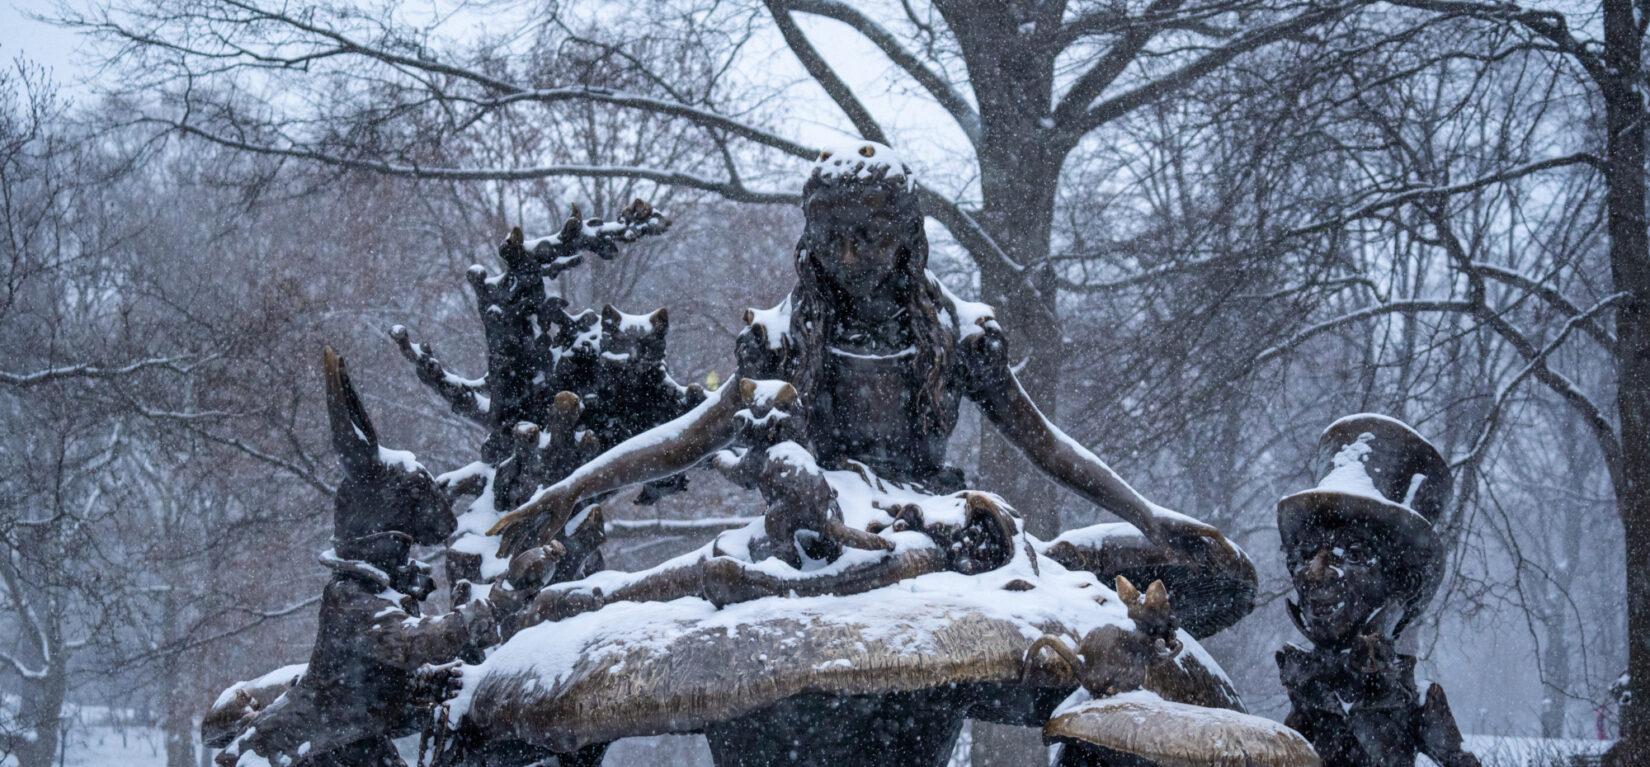 The Alice in Wonderland statue shown dusted with snow